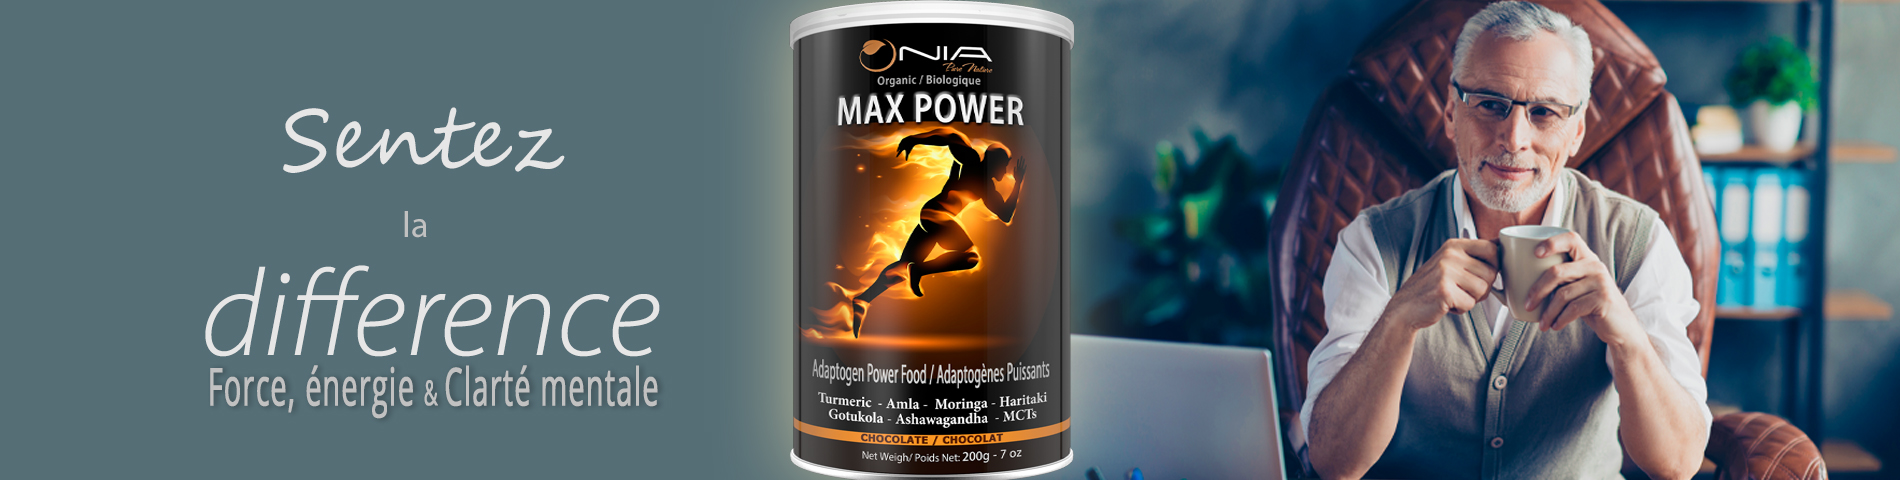 Max Power FRENCH -1final